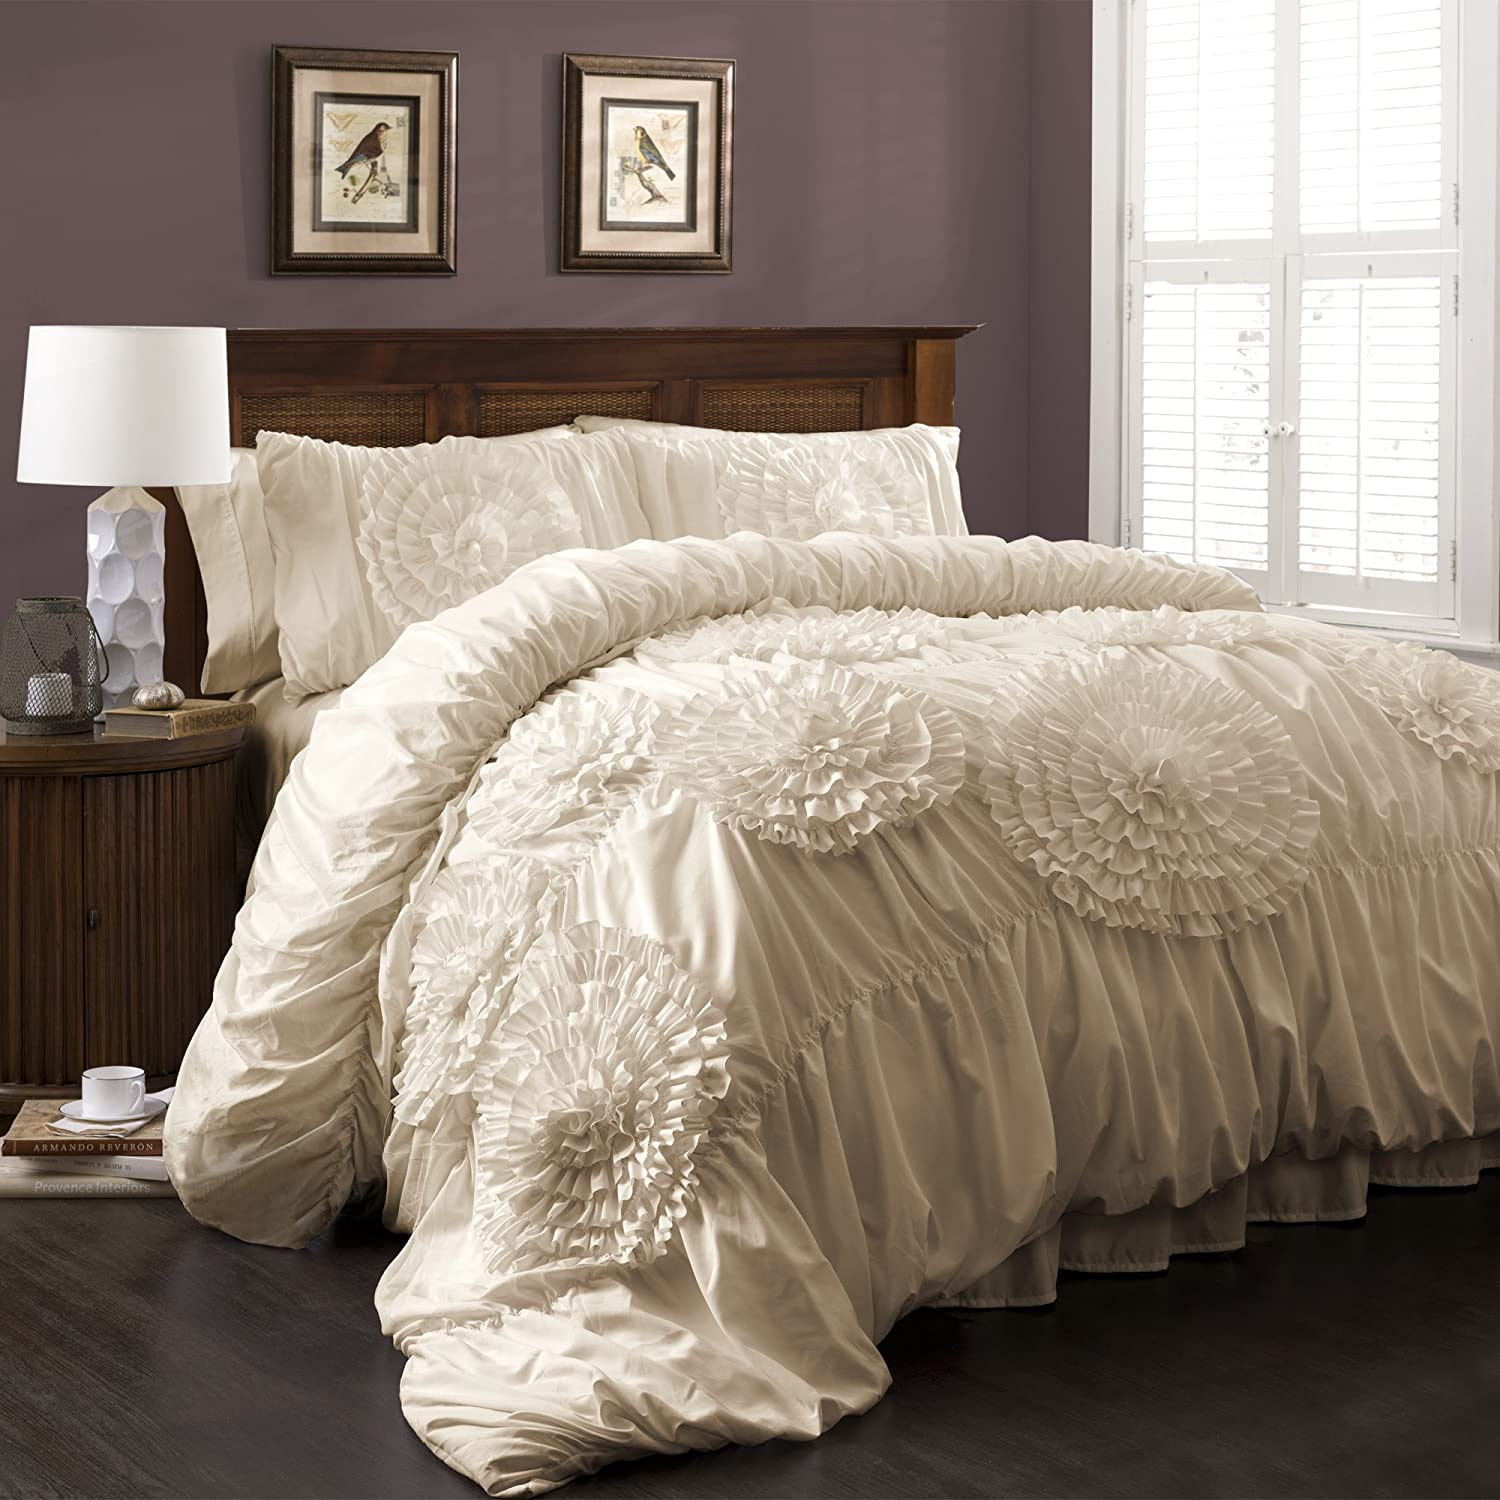 comforters midnight croscill bedding comforter by pin blue monroe